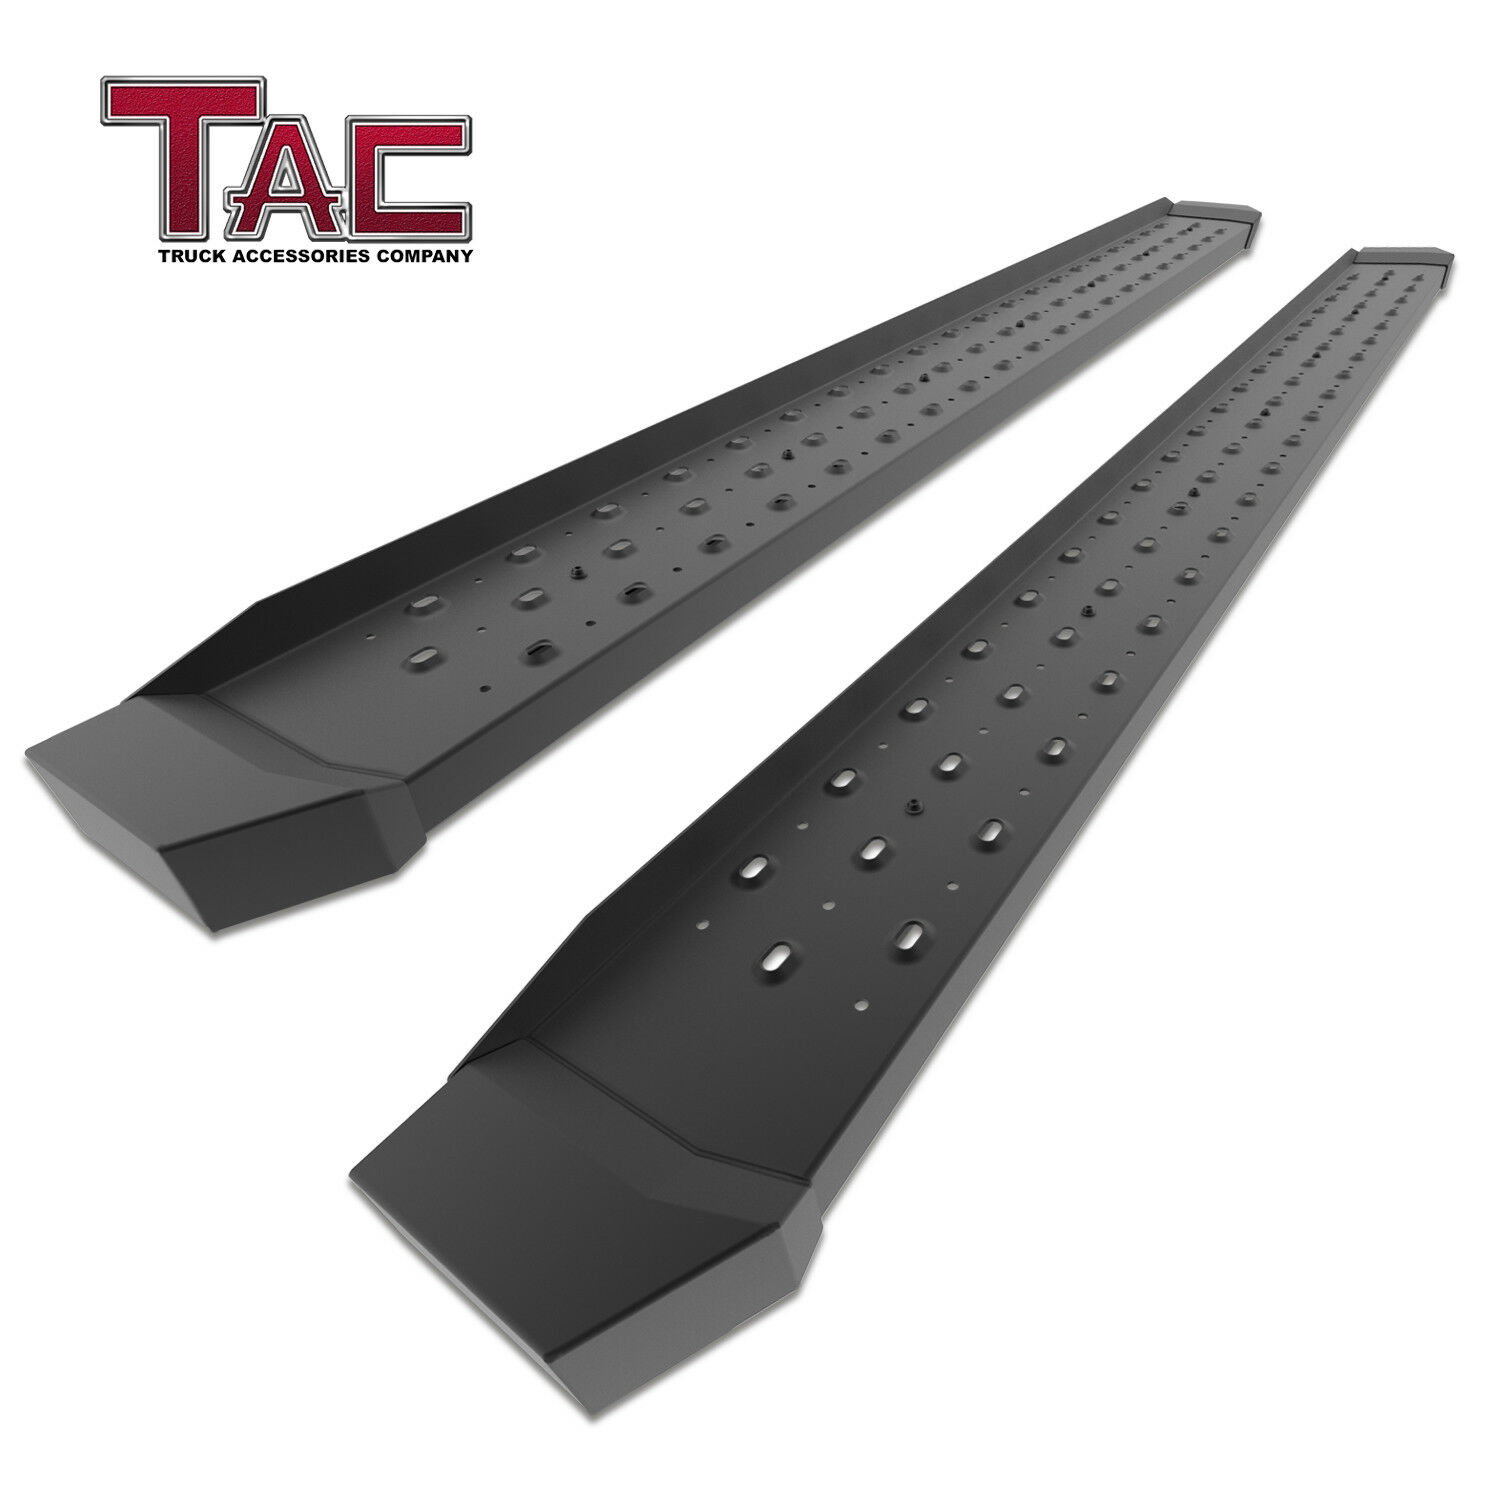 "TAC Side Steps Running Boards Fit 2019 Dodge Ram 1500 Crew Cab Truck Pickup 3/"" Black Side Bars Nerf Bars Step Rails Running Boards Off Road Exterior Accessories 2 Pieces Excl. 2019 Ram 1500 Classic"